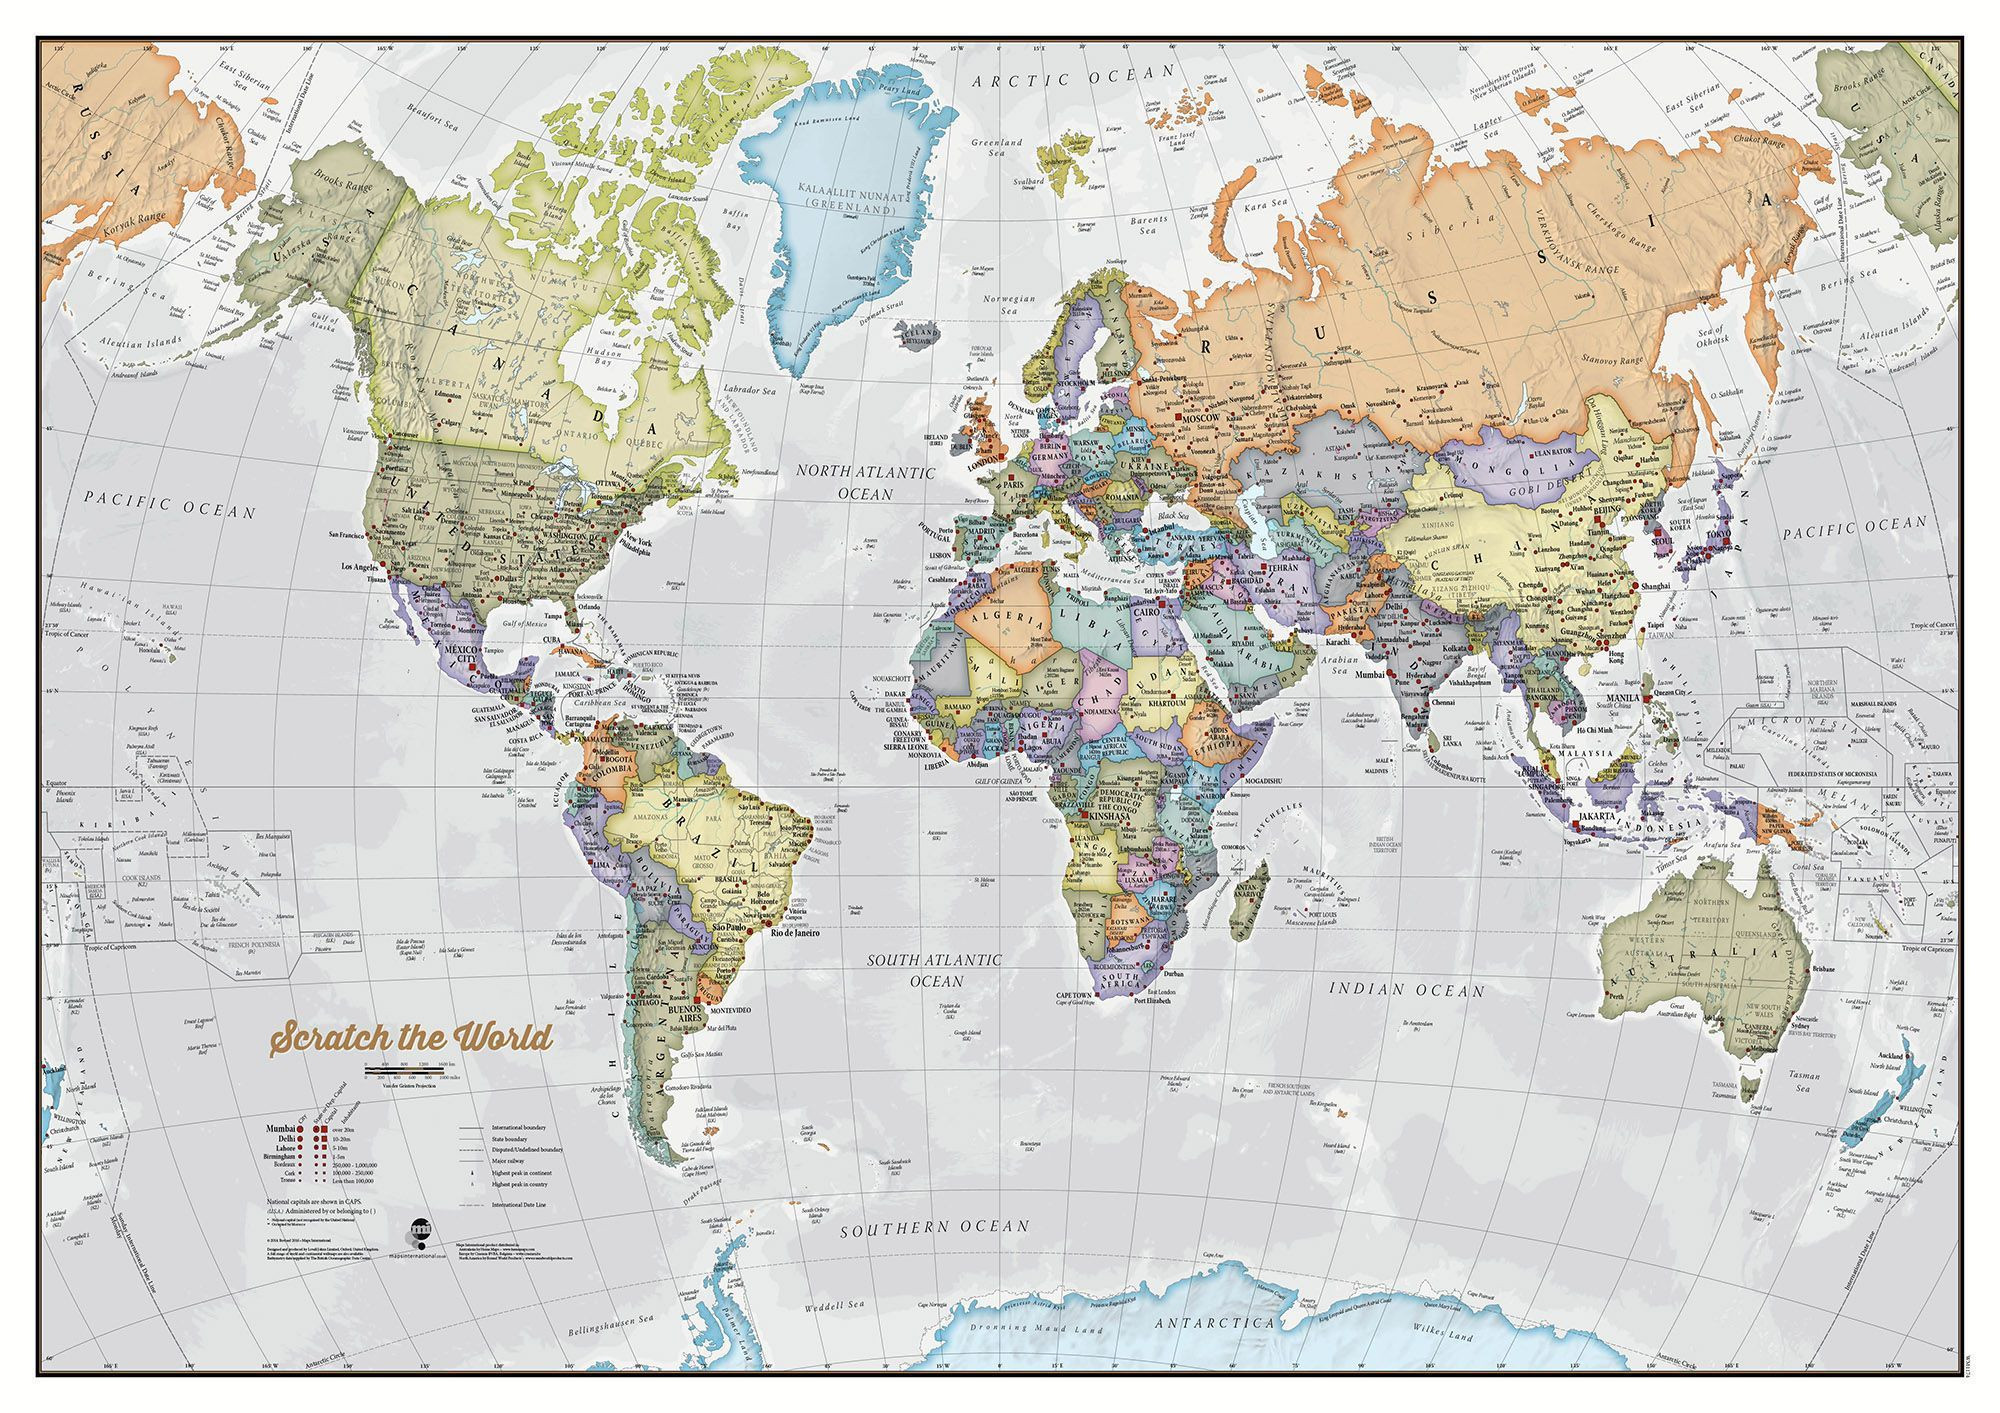 world map print bacons standard map of the world Printable Pages